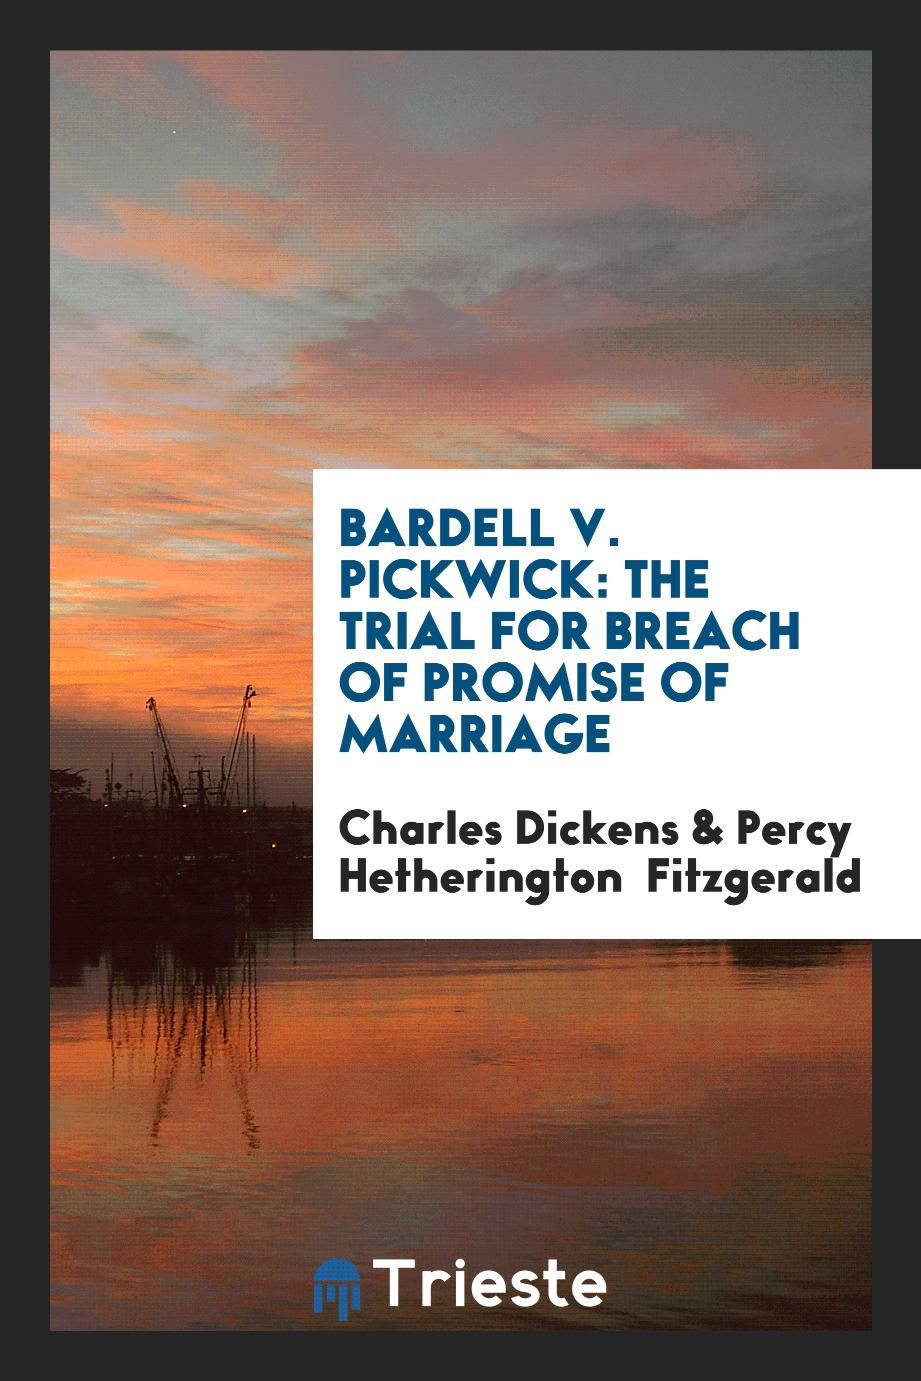 Bardell v. Pickwick: The Trial for Breach of Promise of Marriage